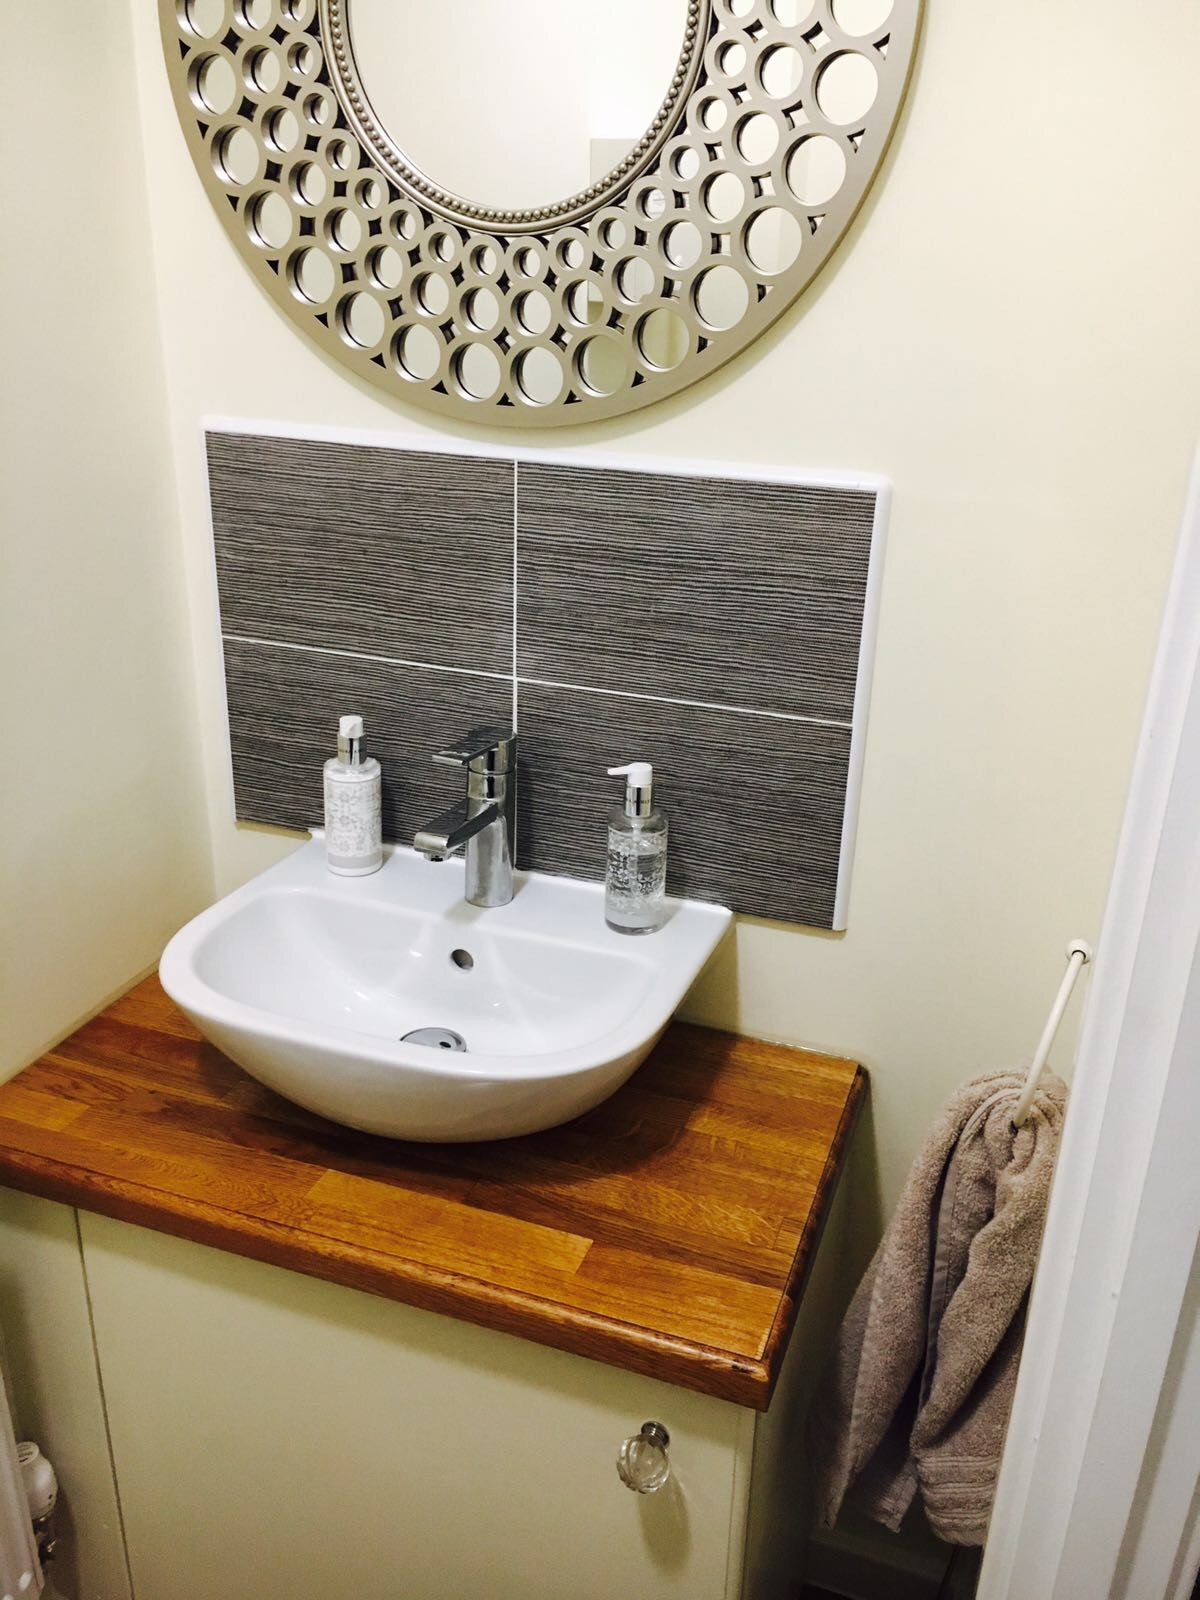 Custom Made Vanity Unit In W/C. Currently Used As A Shoe Cupboard.